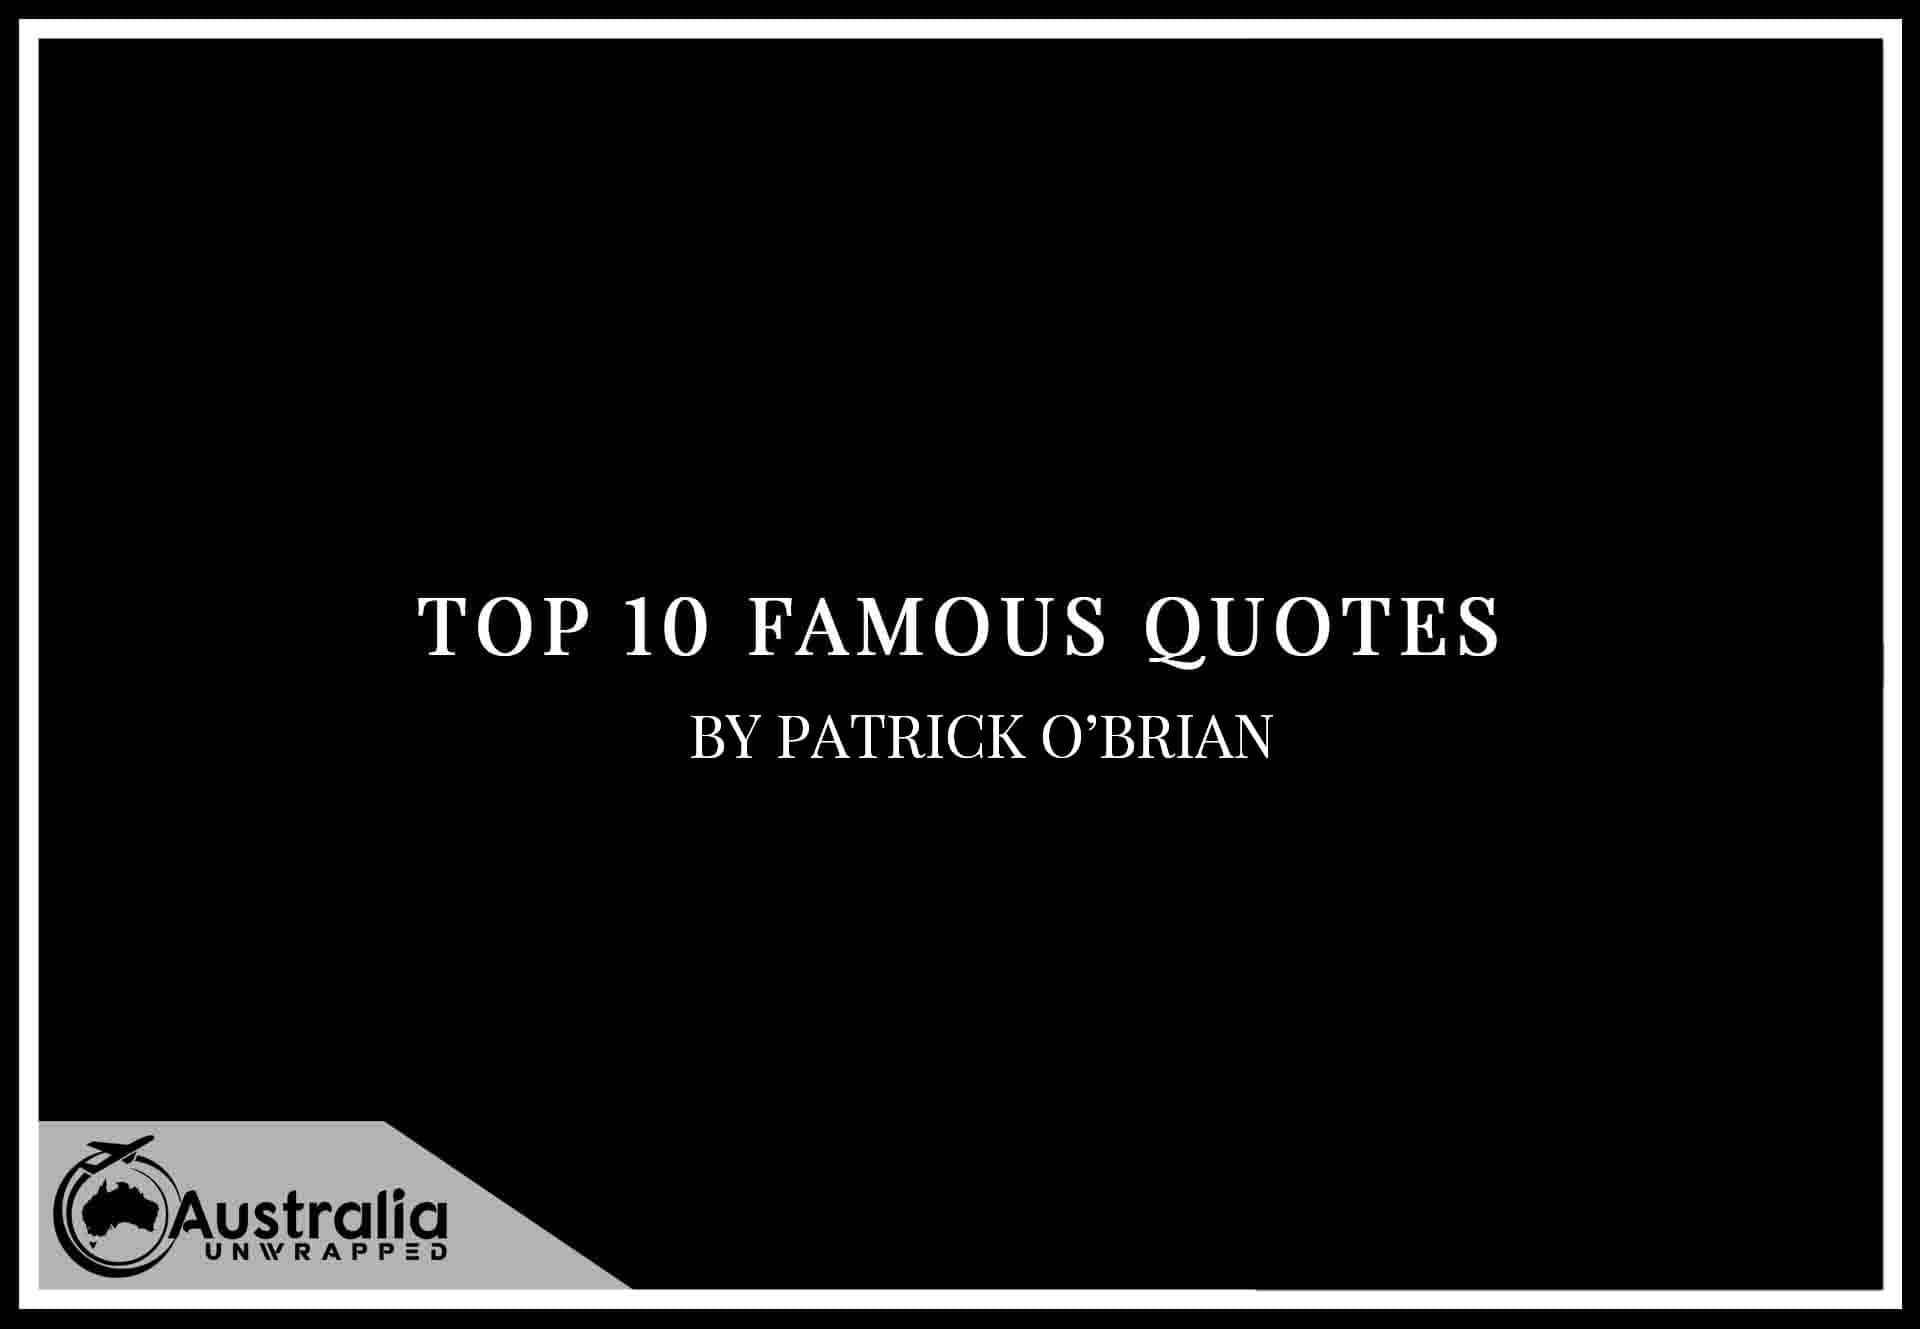 Top 10 Famous Quotes by Author Patrick O'Brian